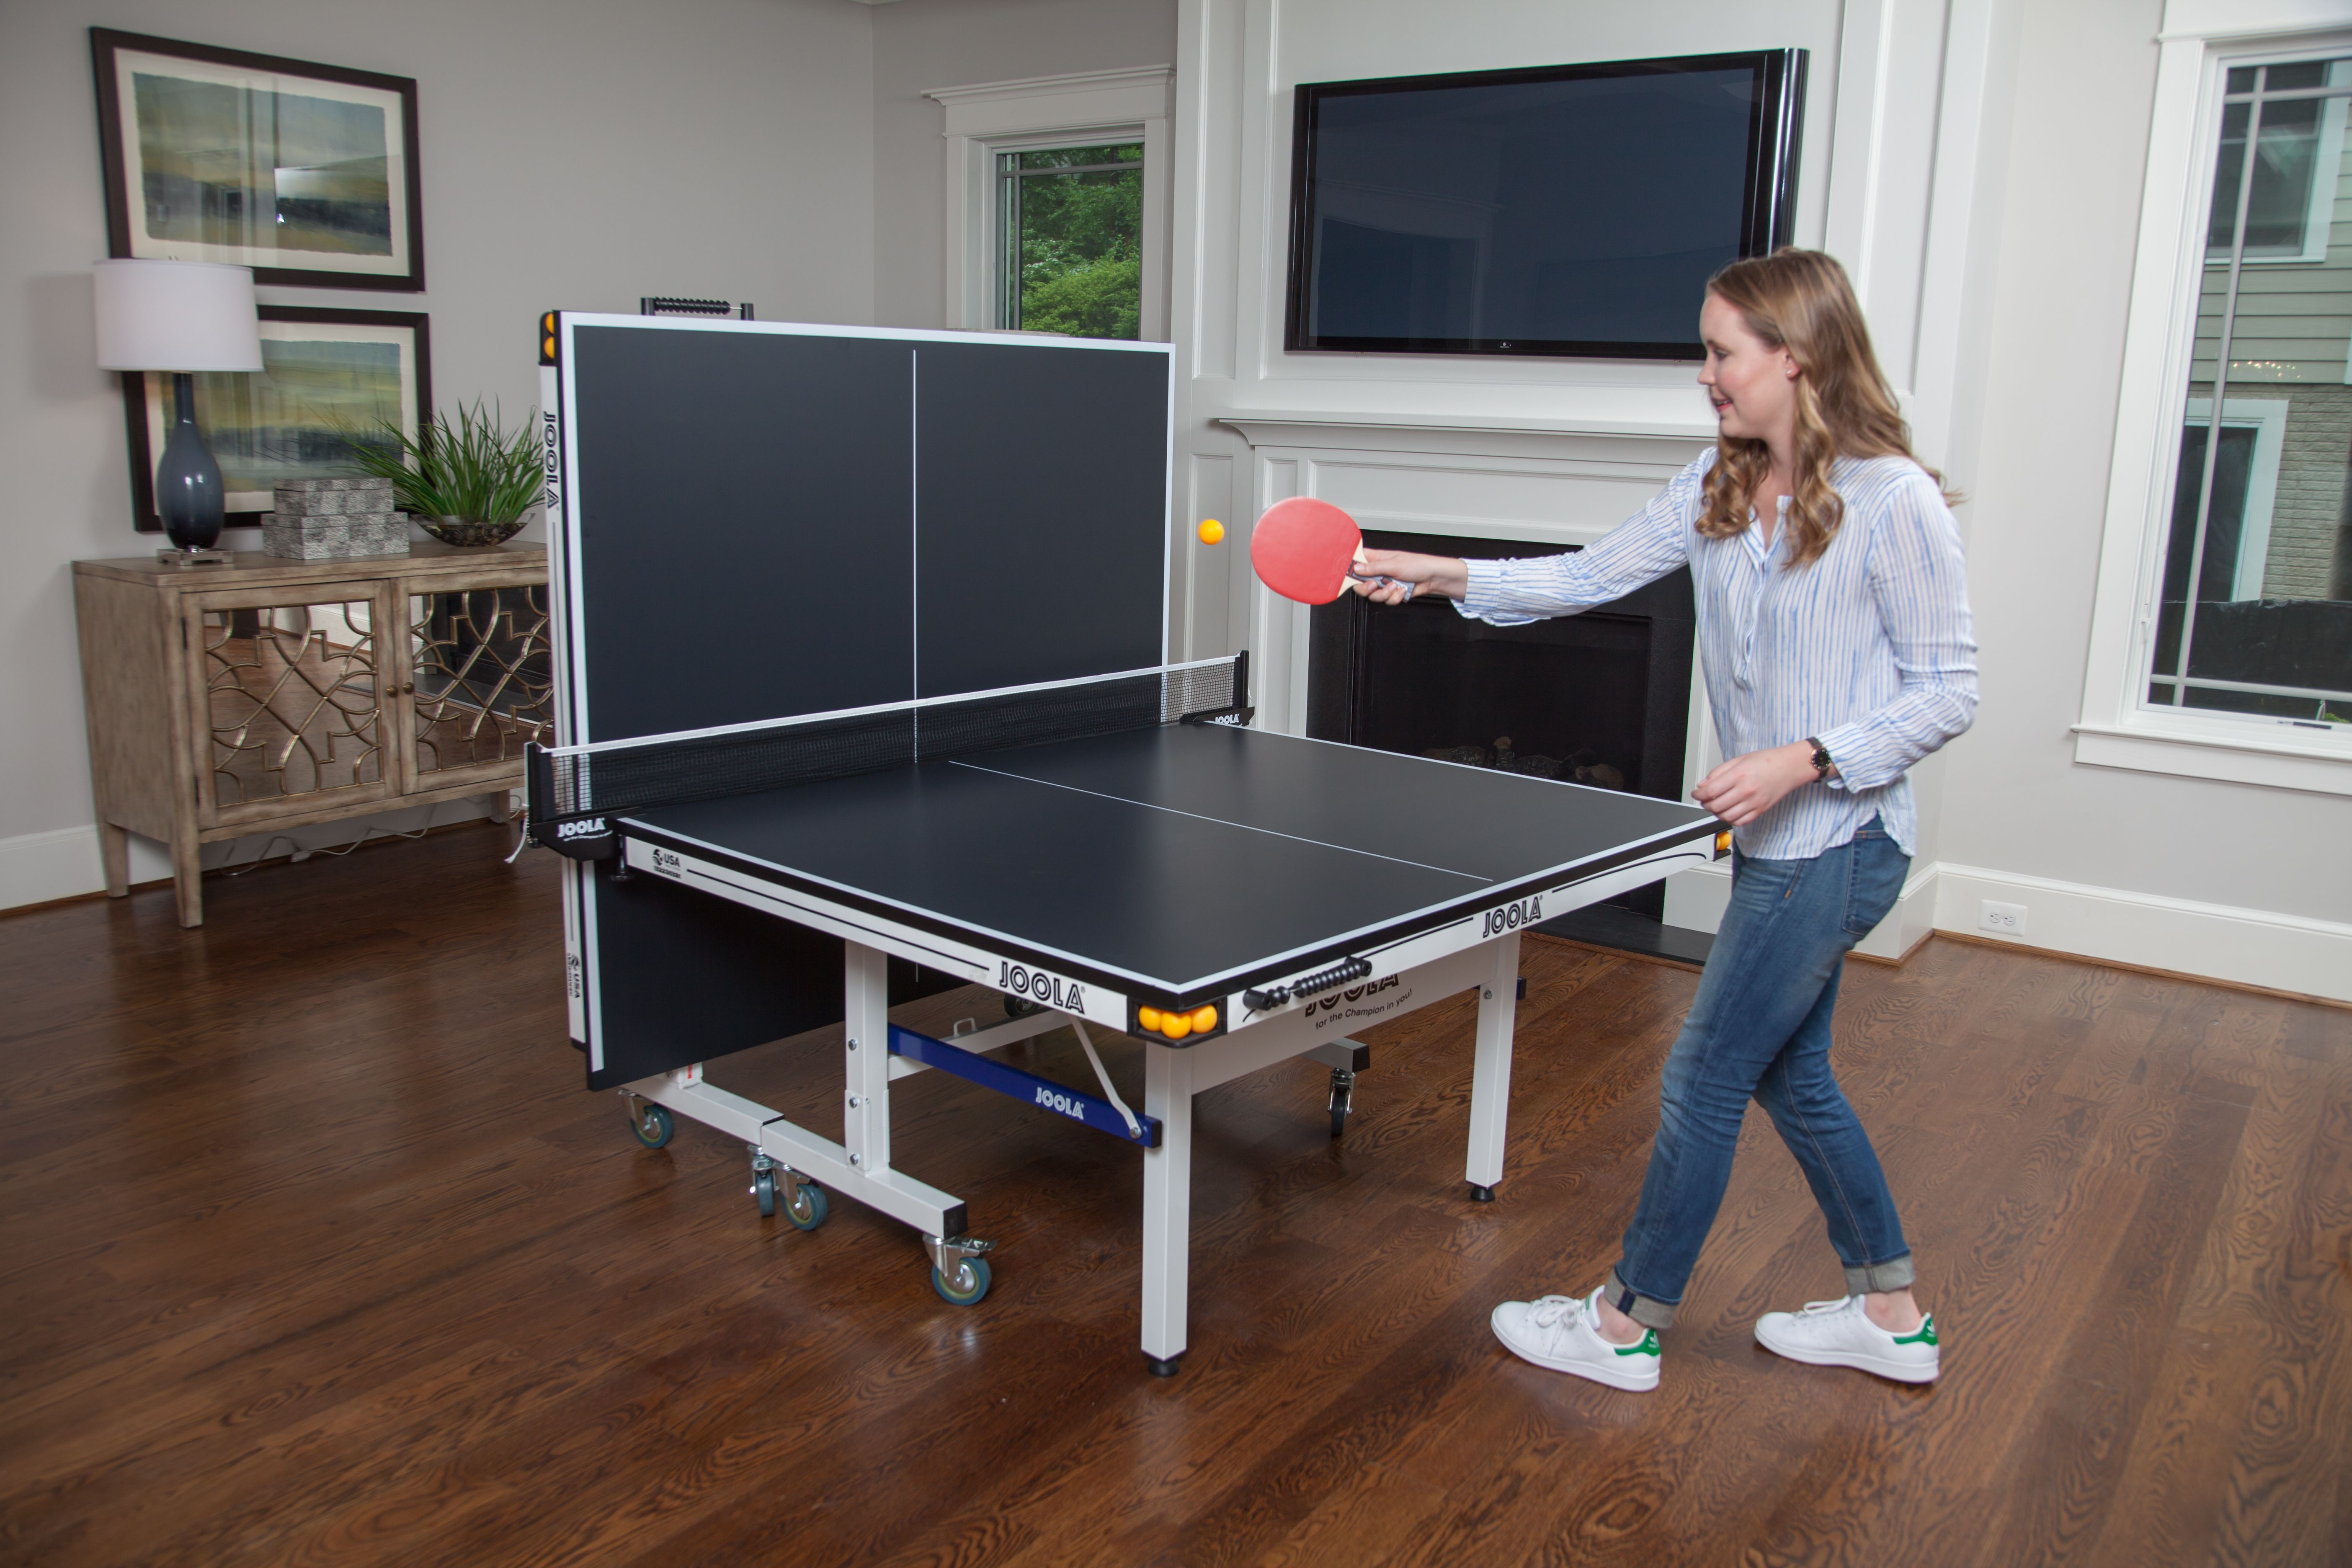 The 2 Piece Joola Rapidplay 180 Table Tennis Table Allows For Solo Playback Mode So You Can Practice Ping Pong Without A Table Tennis Ping Pong Durable Table